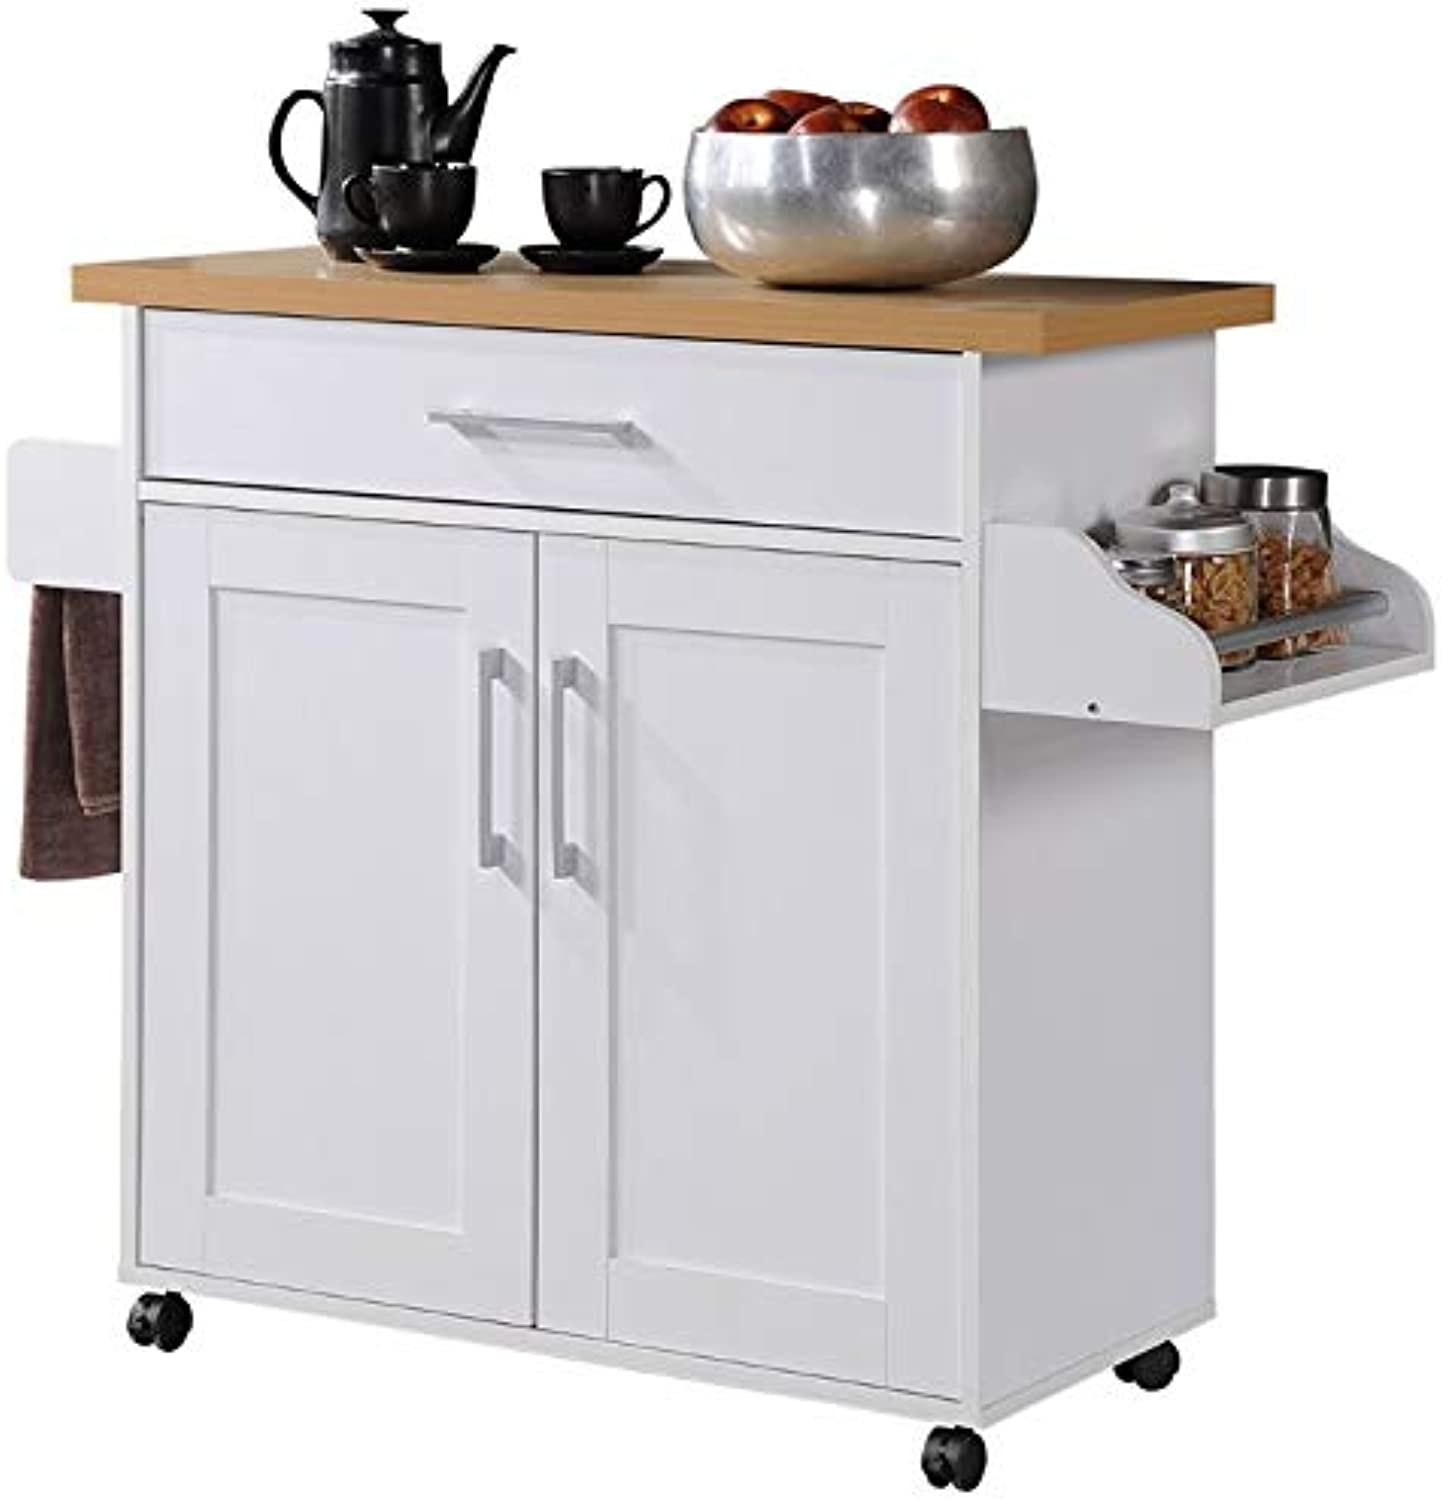 Pemberly Row Kitchen Island with Spice Rack in White